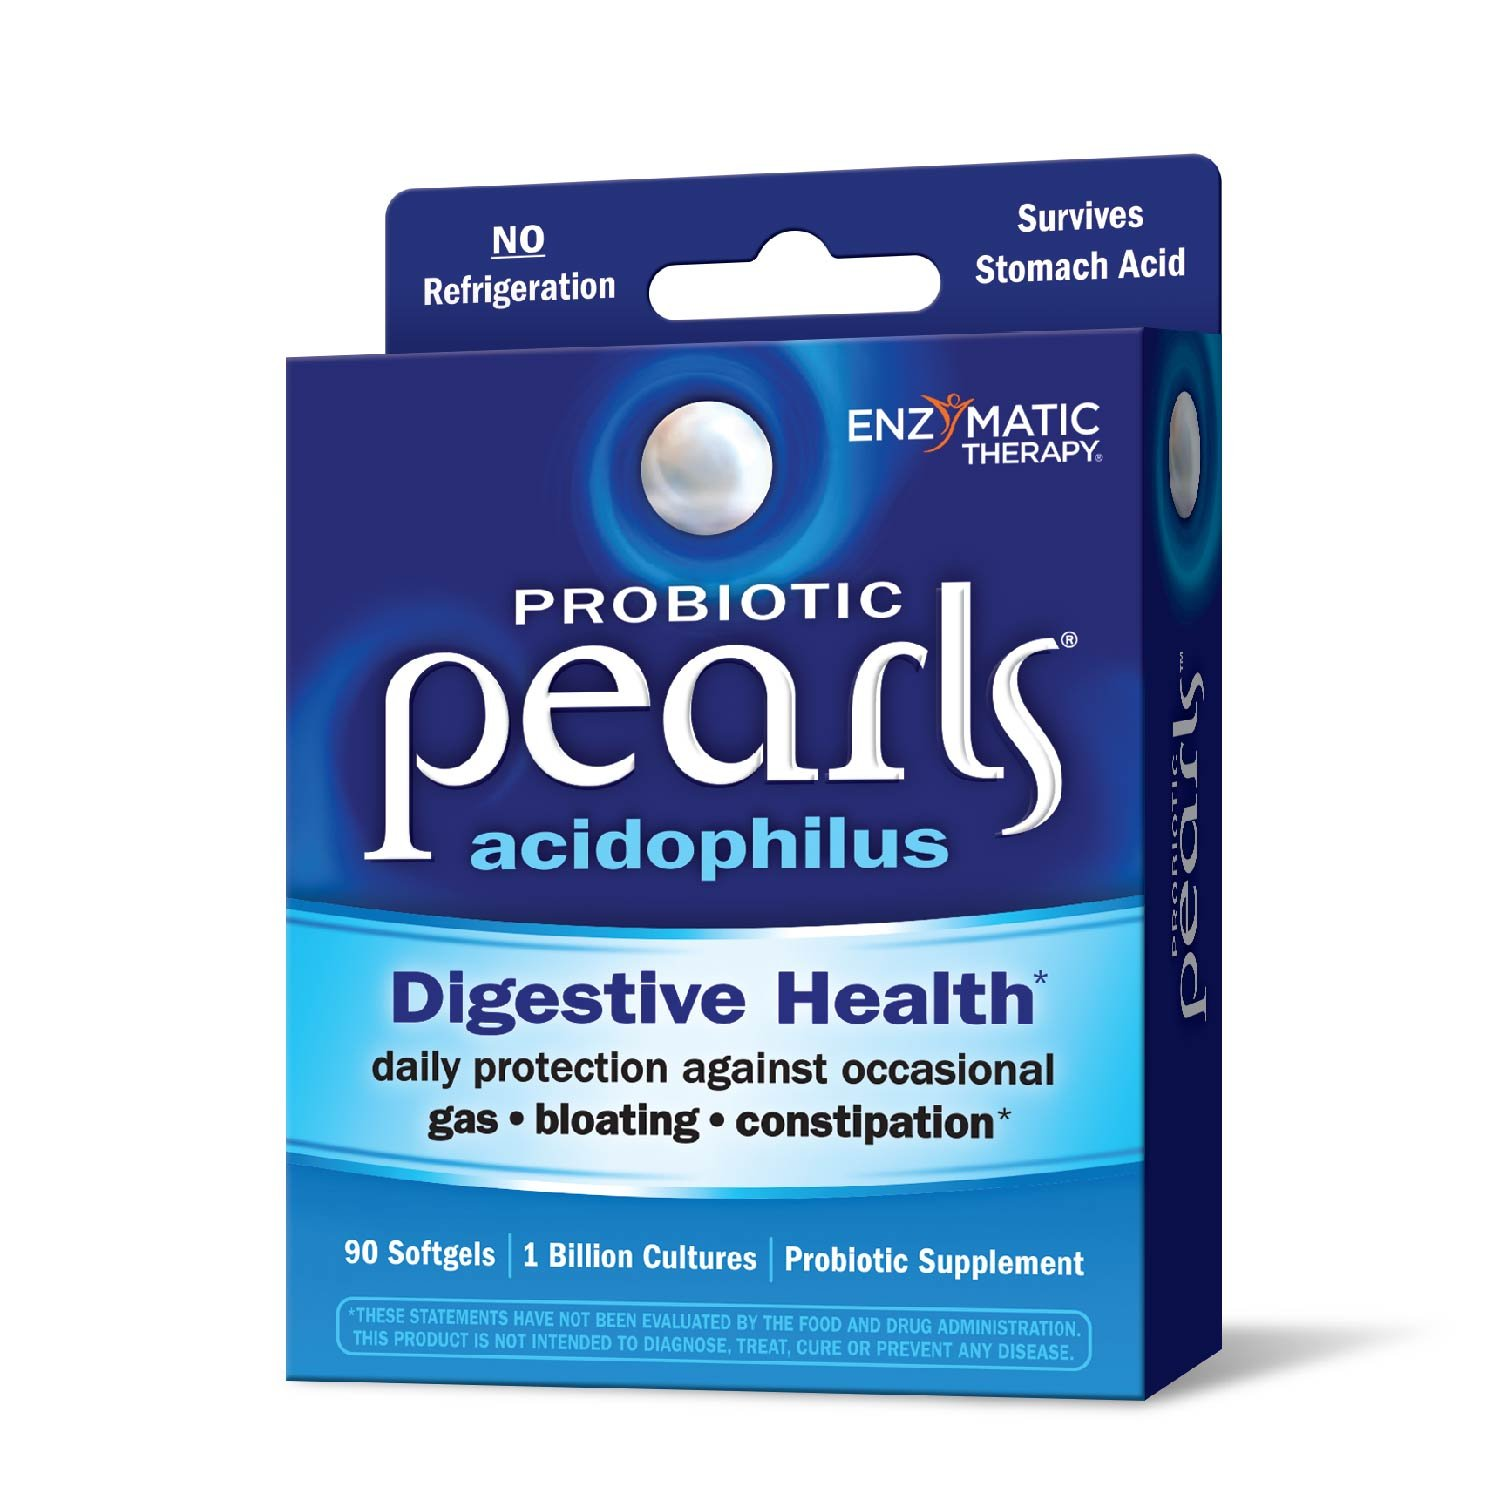 Probiotic Pearls Acidophilus Once Daily Probiotic Supplement, 1 Billion Live Cultures, Survives Stomach Acid, No Refrigeration, 90 Softgels (Packaging May Vary)